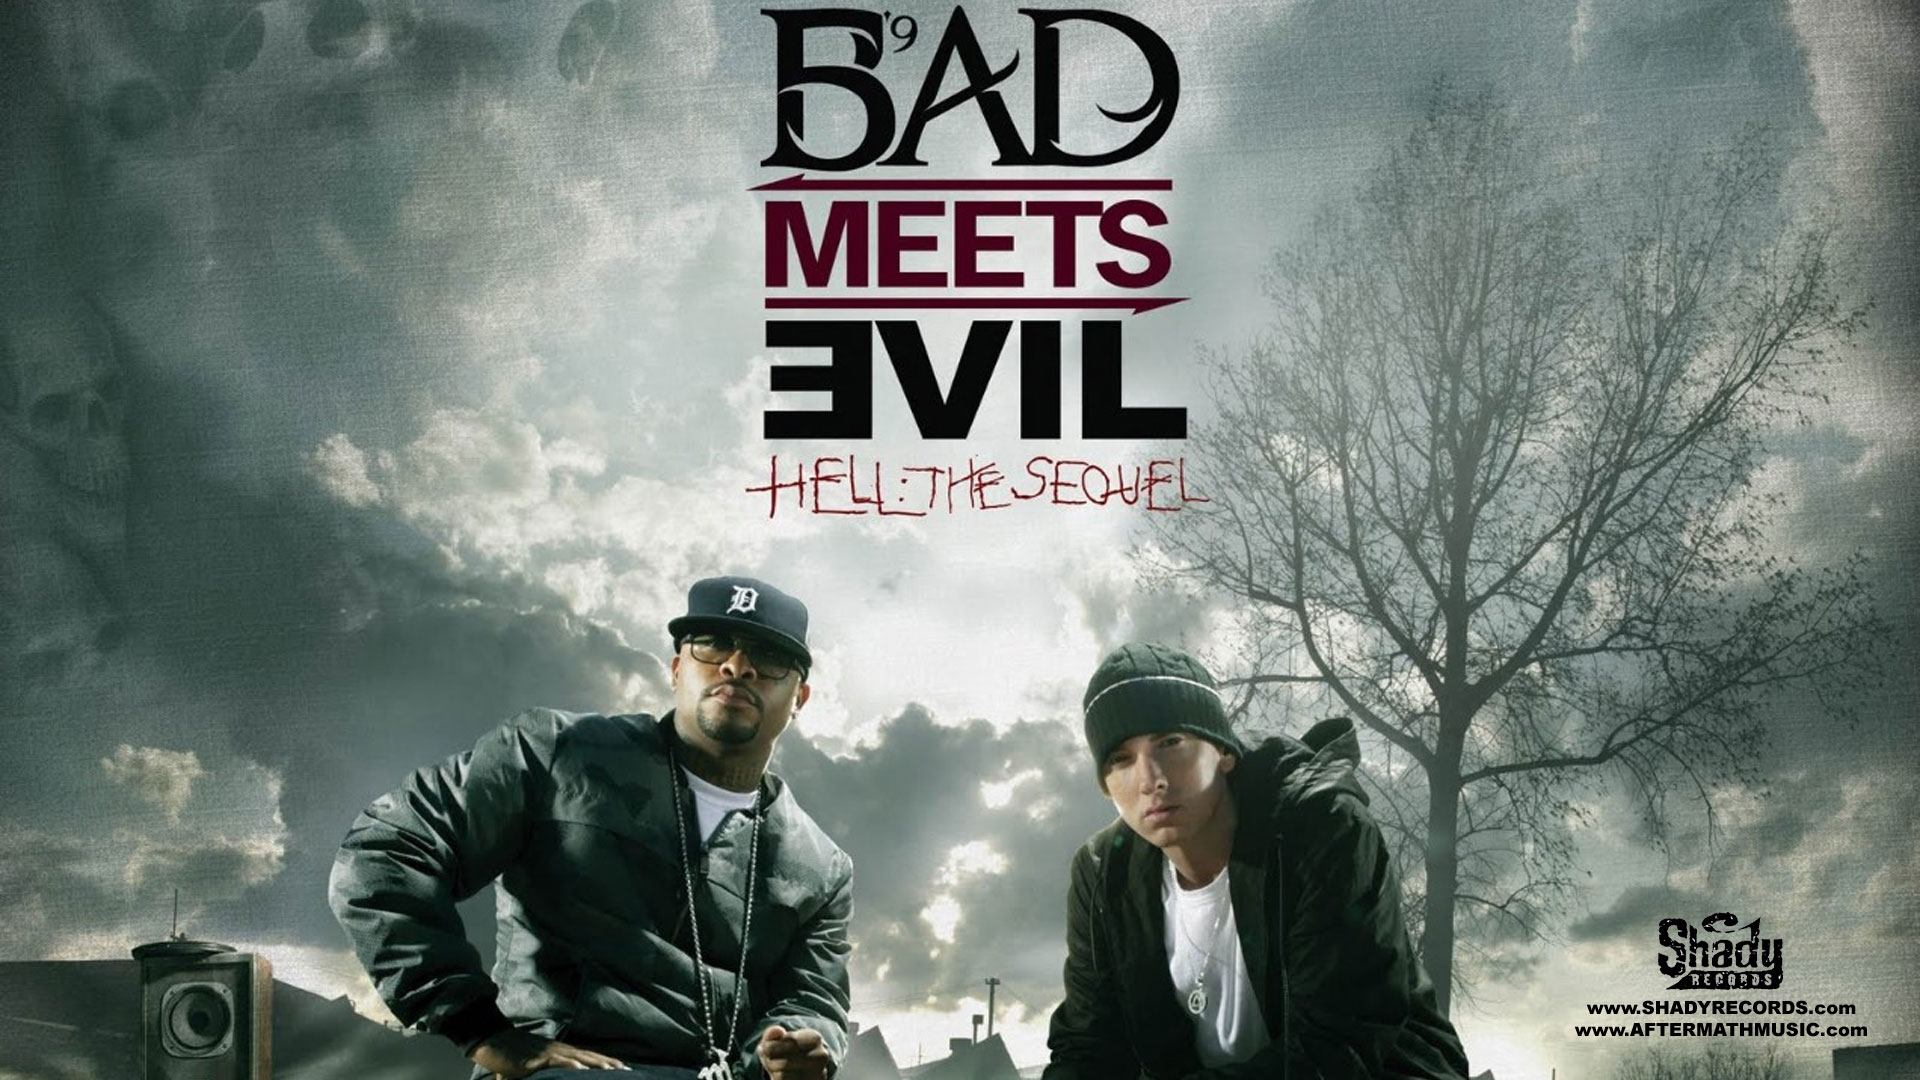 Eminem Wallpapers HD bad meets devil